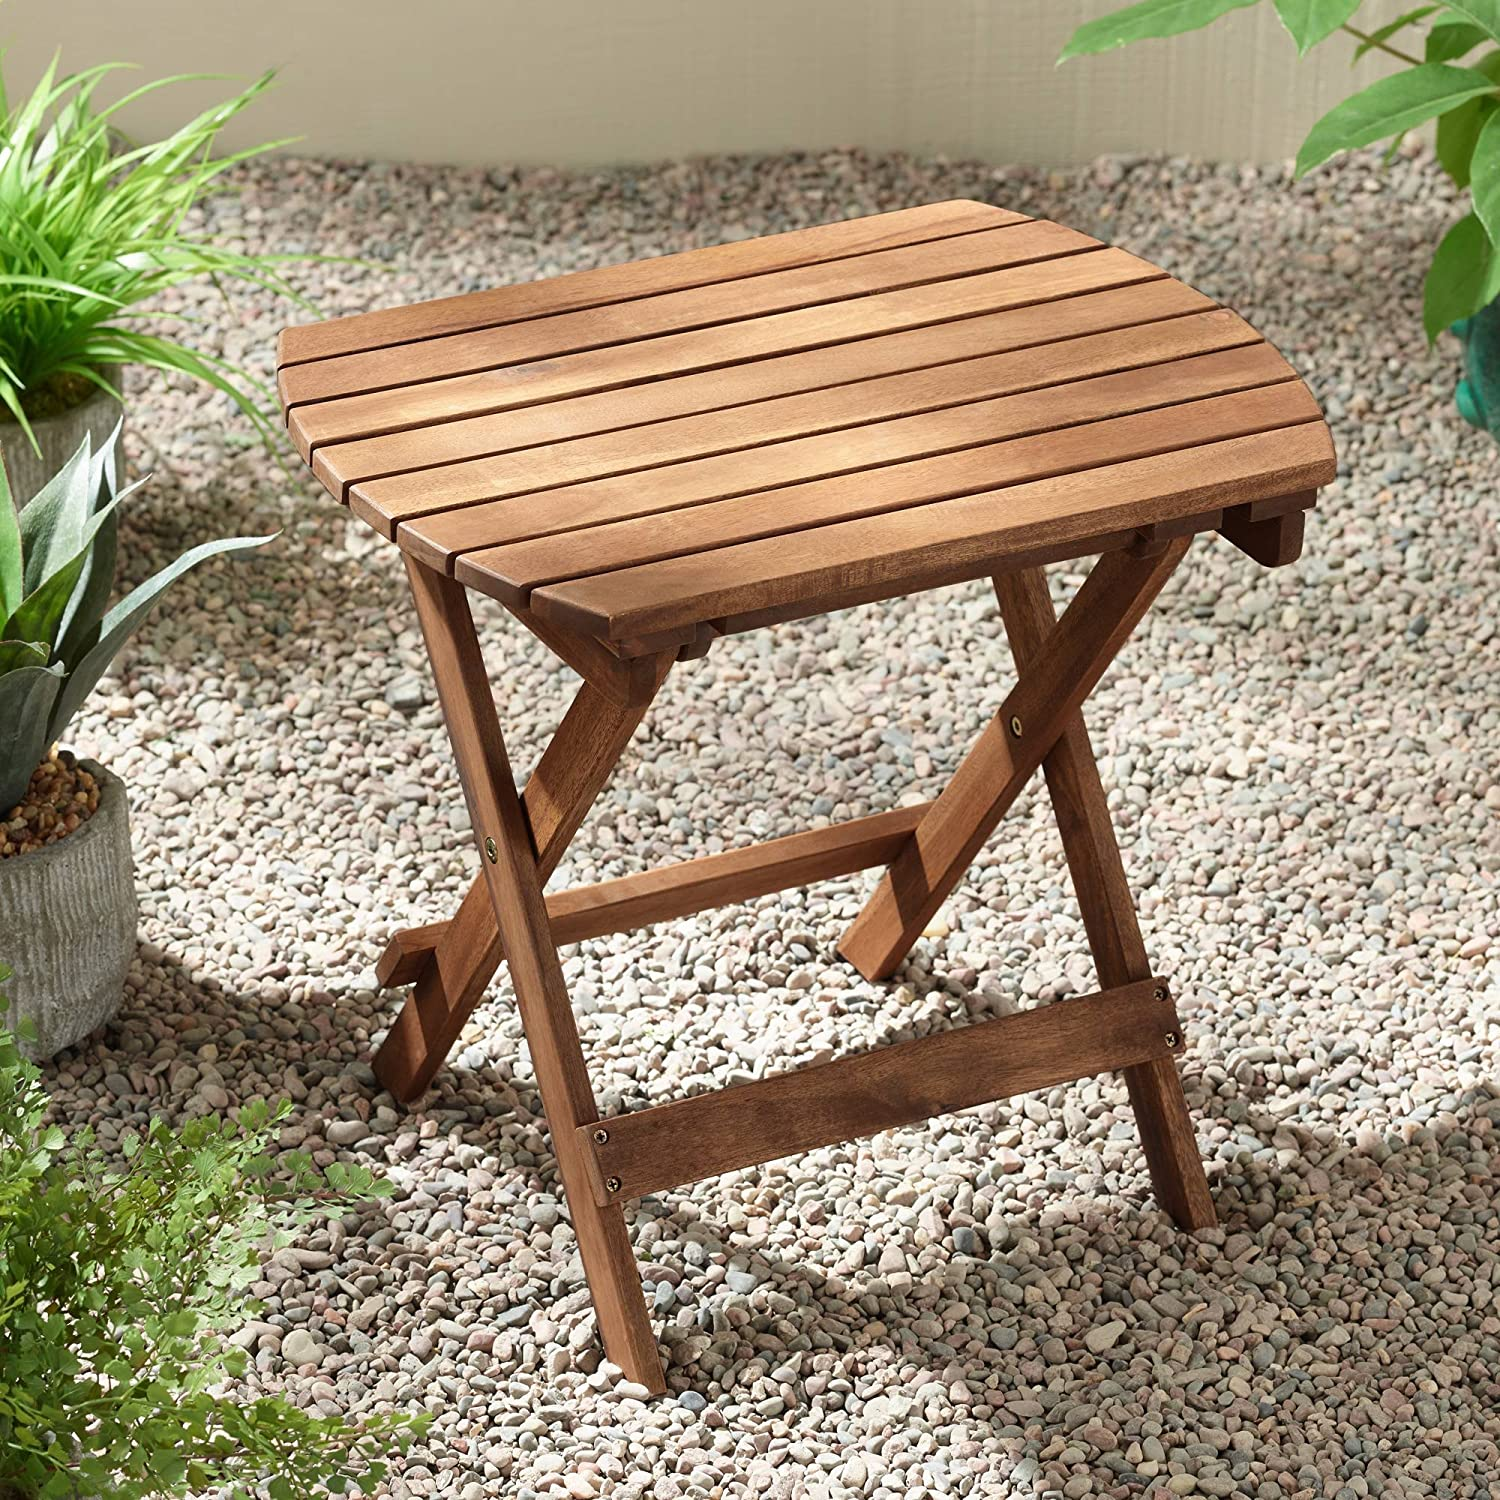 Teal Island Designs Monterey Natural Wood Outdoor Side Table